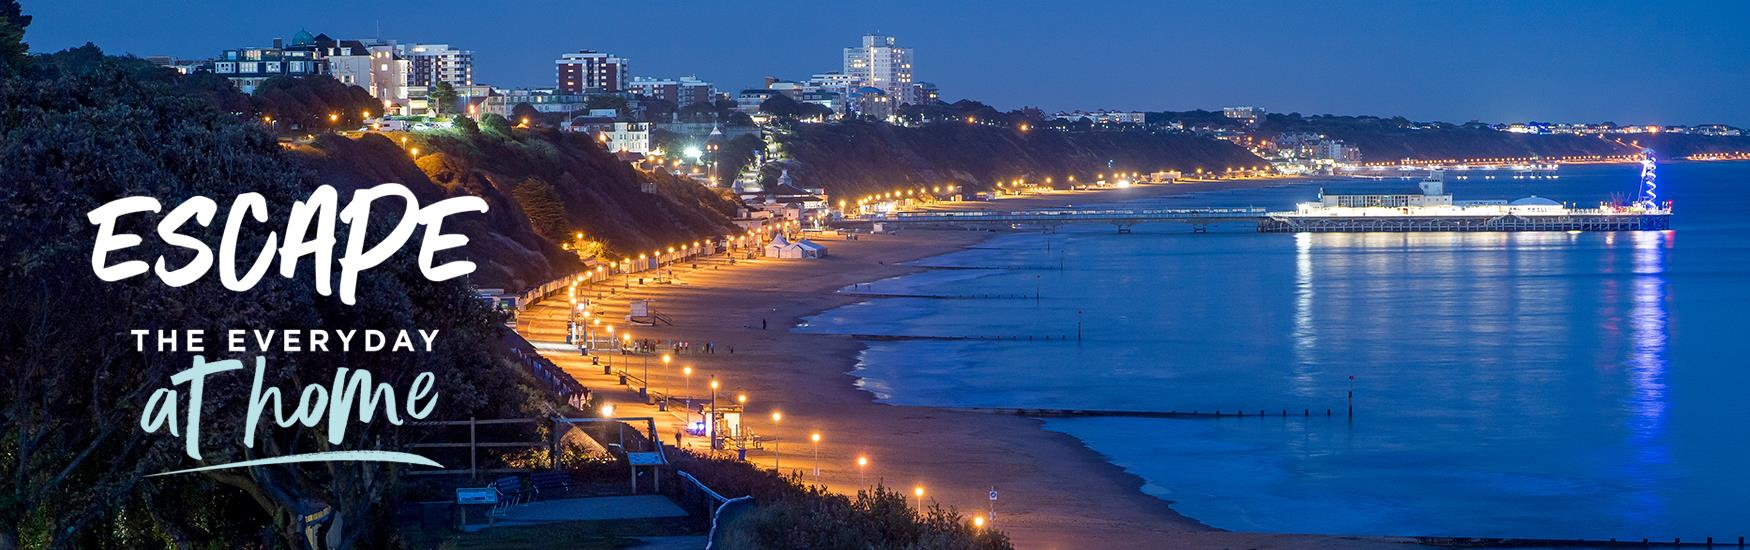 Bournemouth Bay lit up at night with the text Escape the Everyday at home